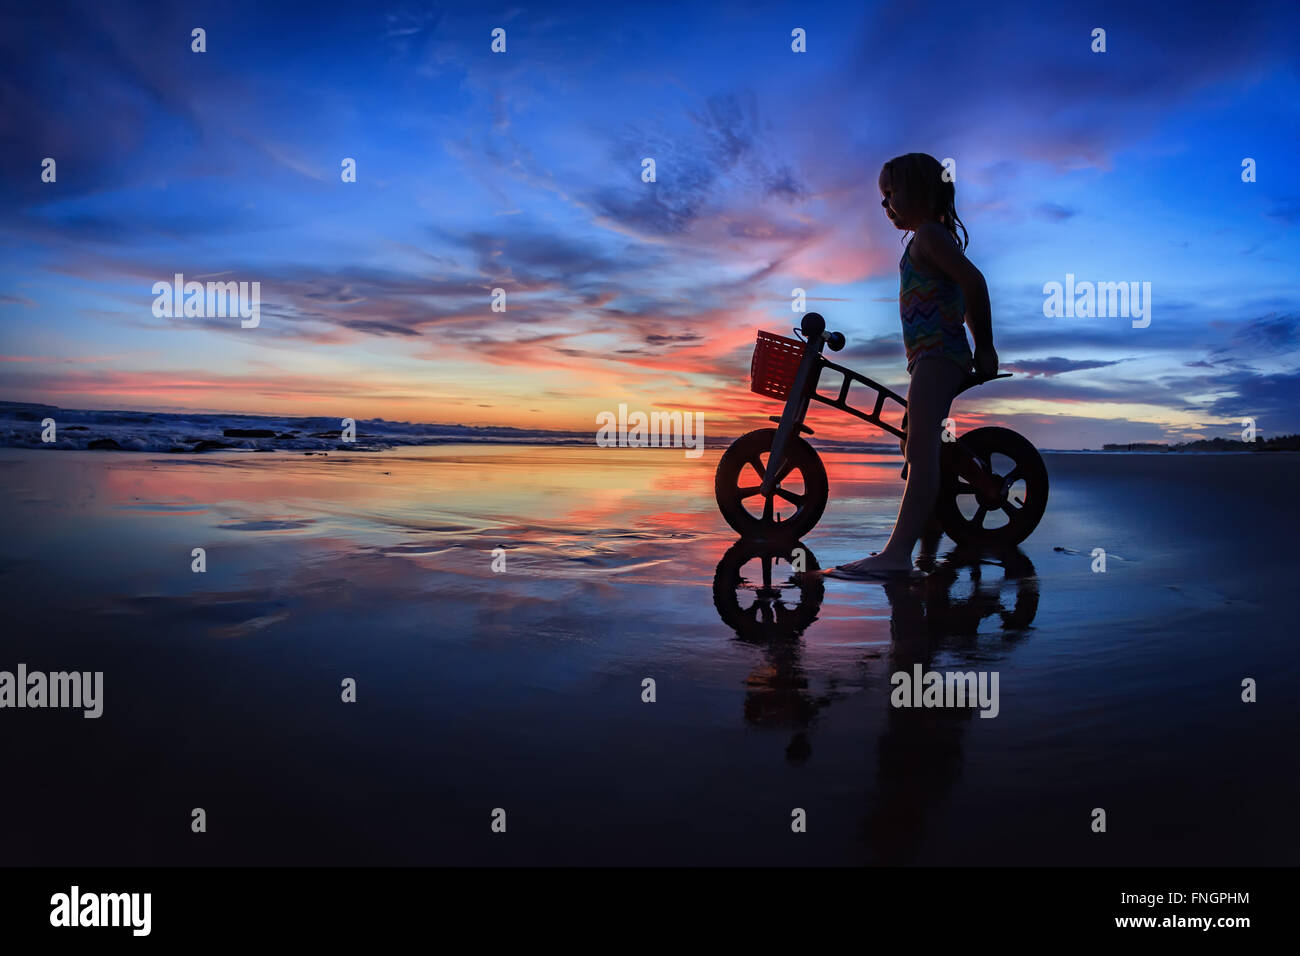 Black silhouette of little child - run bike rider stand on wet sand beach, look at sea surf and colourful sunset - Stock Image